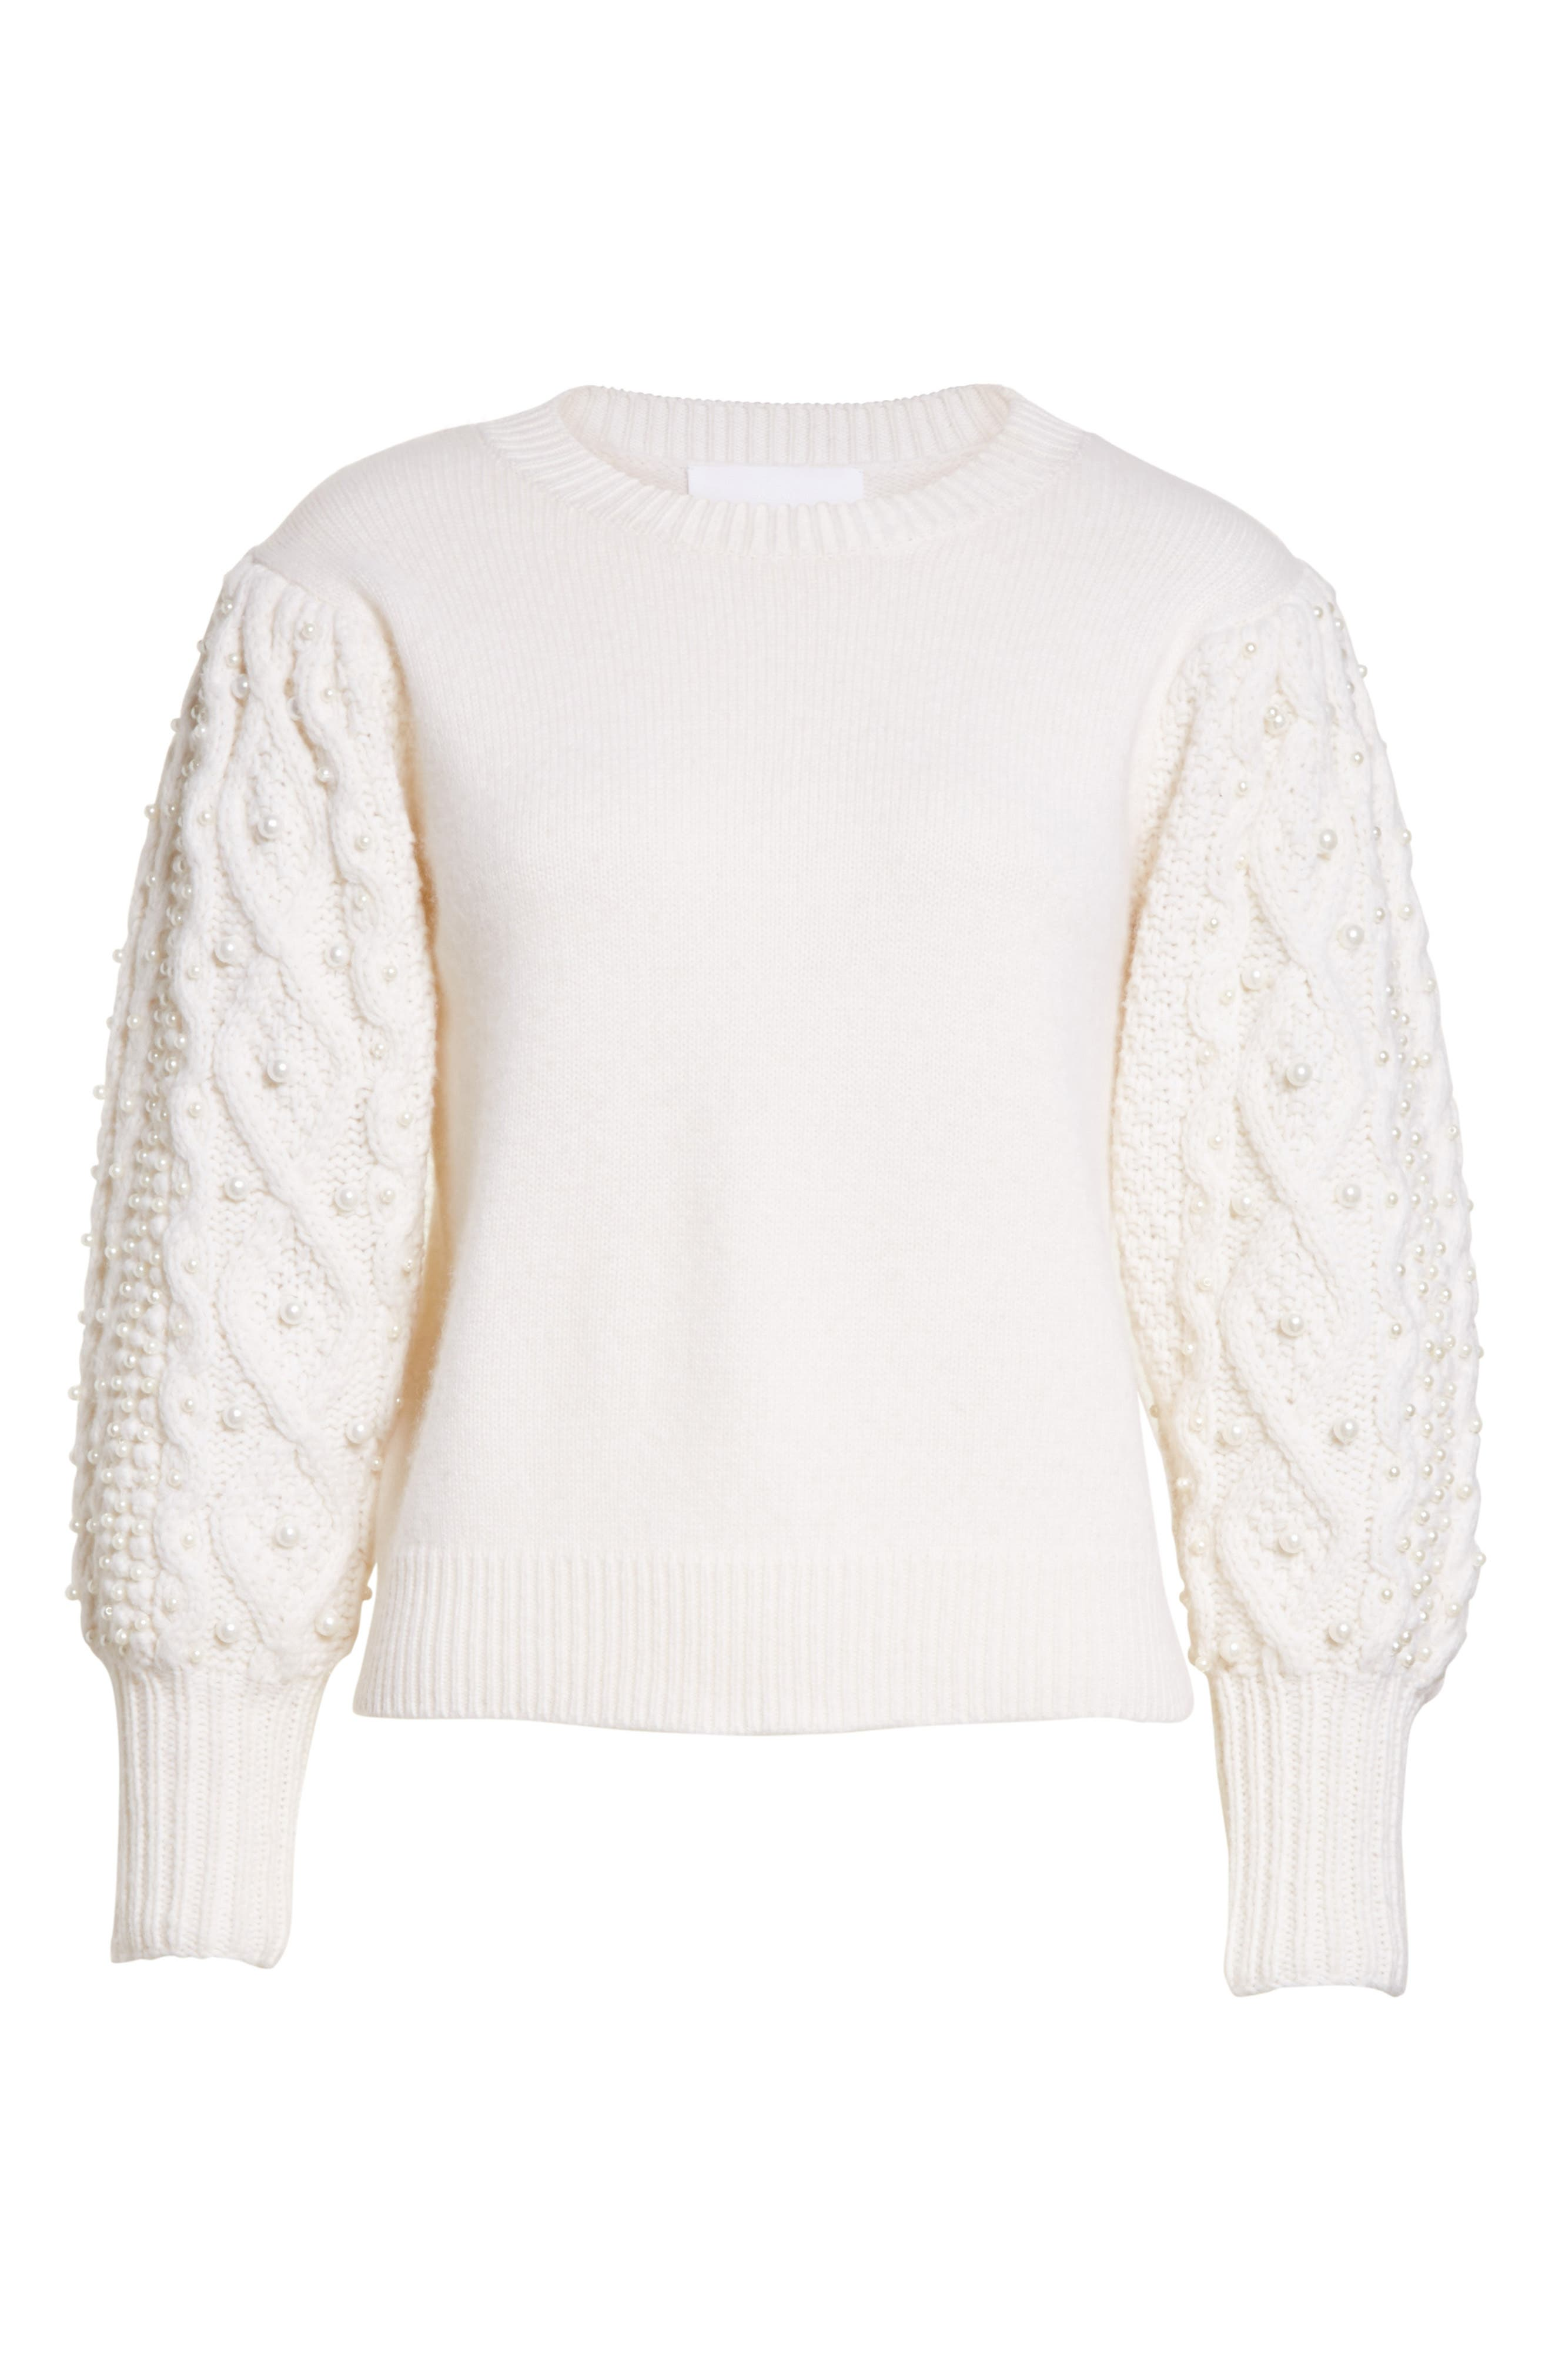 Imitation Pearl Embellished Wool & Cashmere Sweater,                             Alternate thumbnail 7, color,                             Ivory